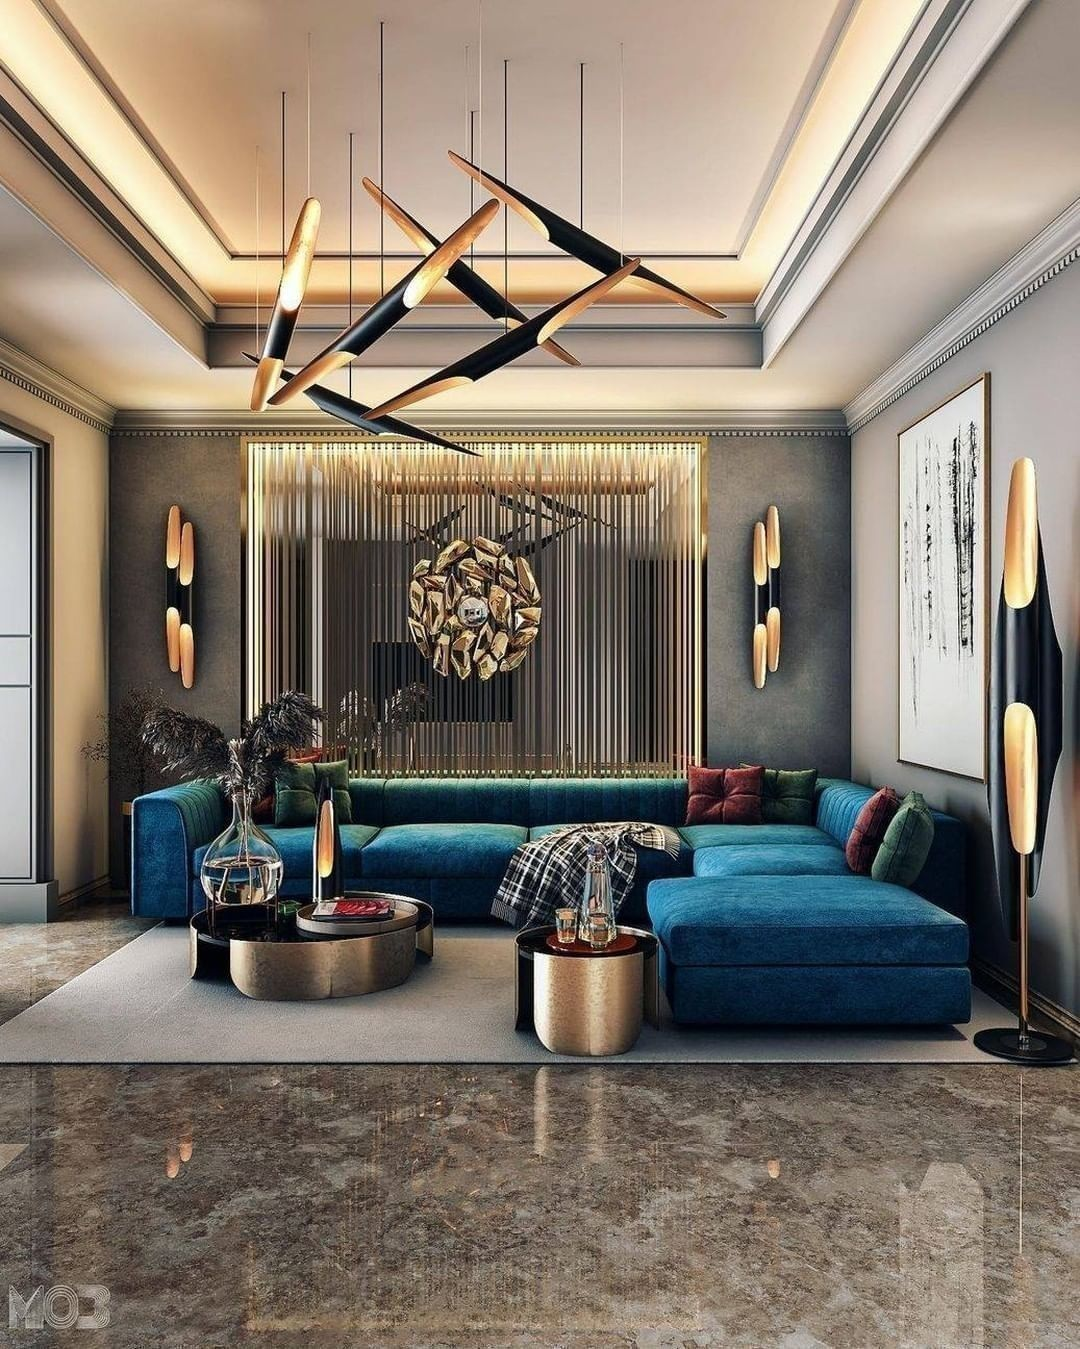 Bring Your Living Room To Life With These Wonderful Ideas living room ideas Bring Your Living Room To Life With These Wonderful Ideas CovetHouse 1